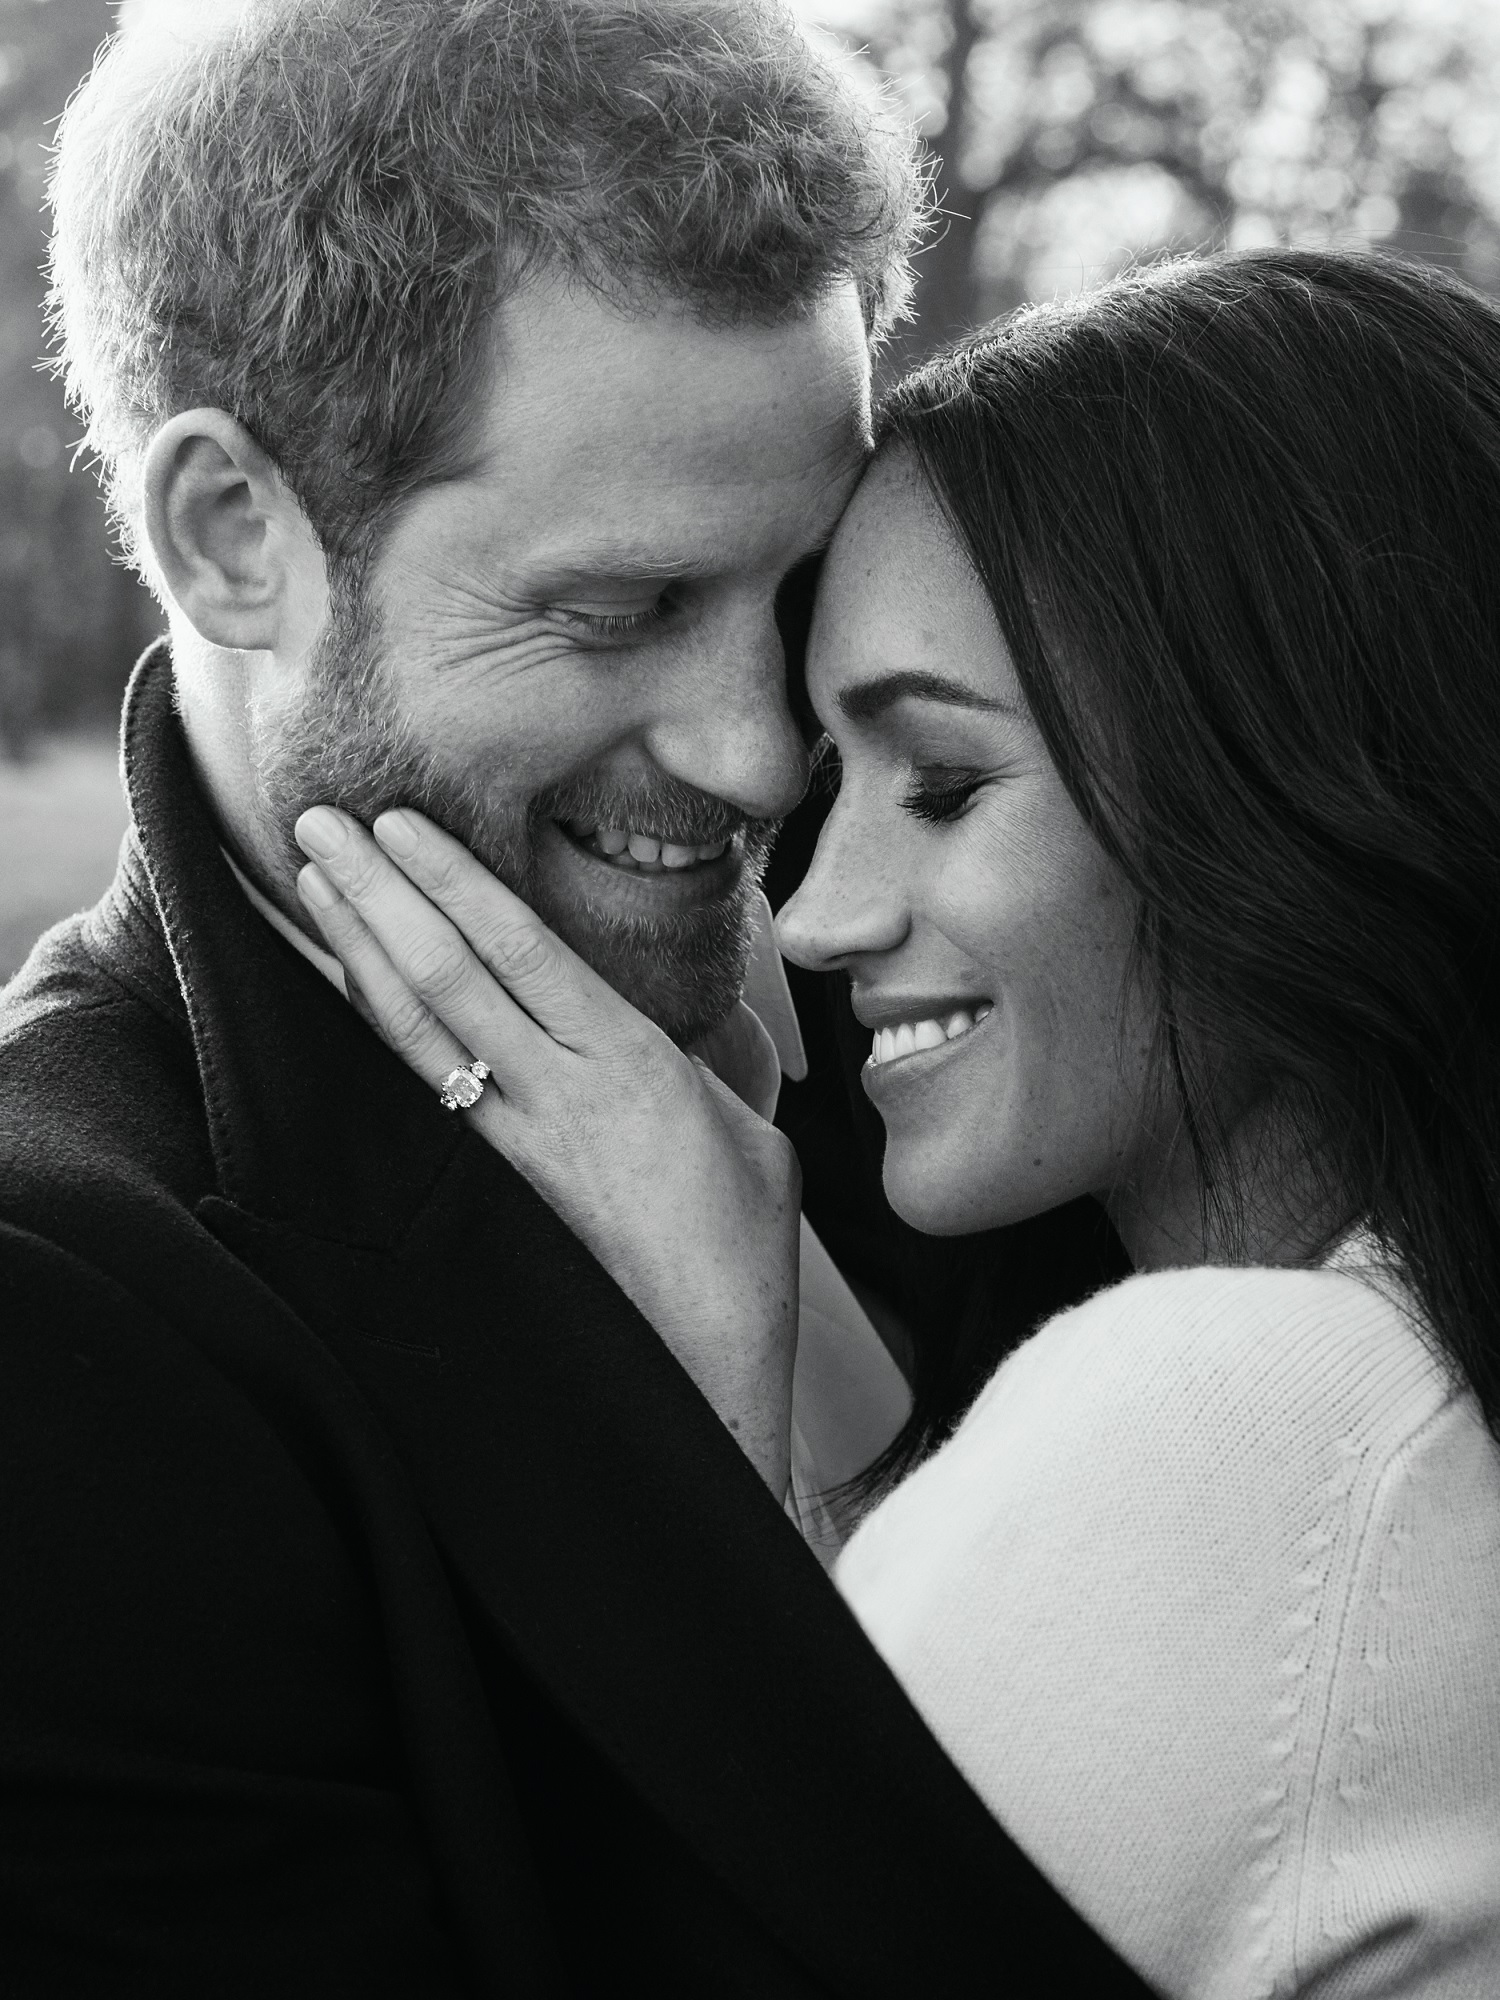 Prince Harry and Meghan Markle hugging engagement photo